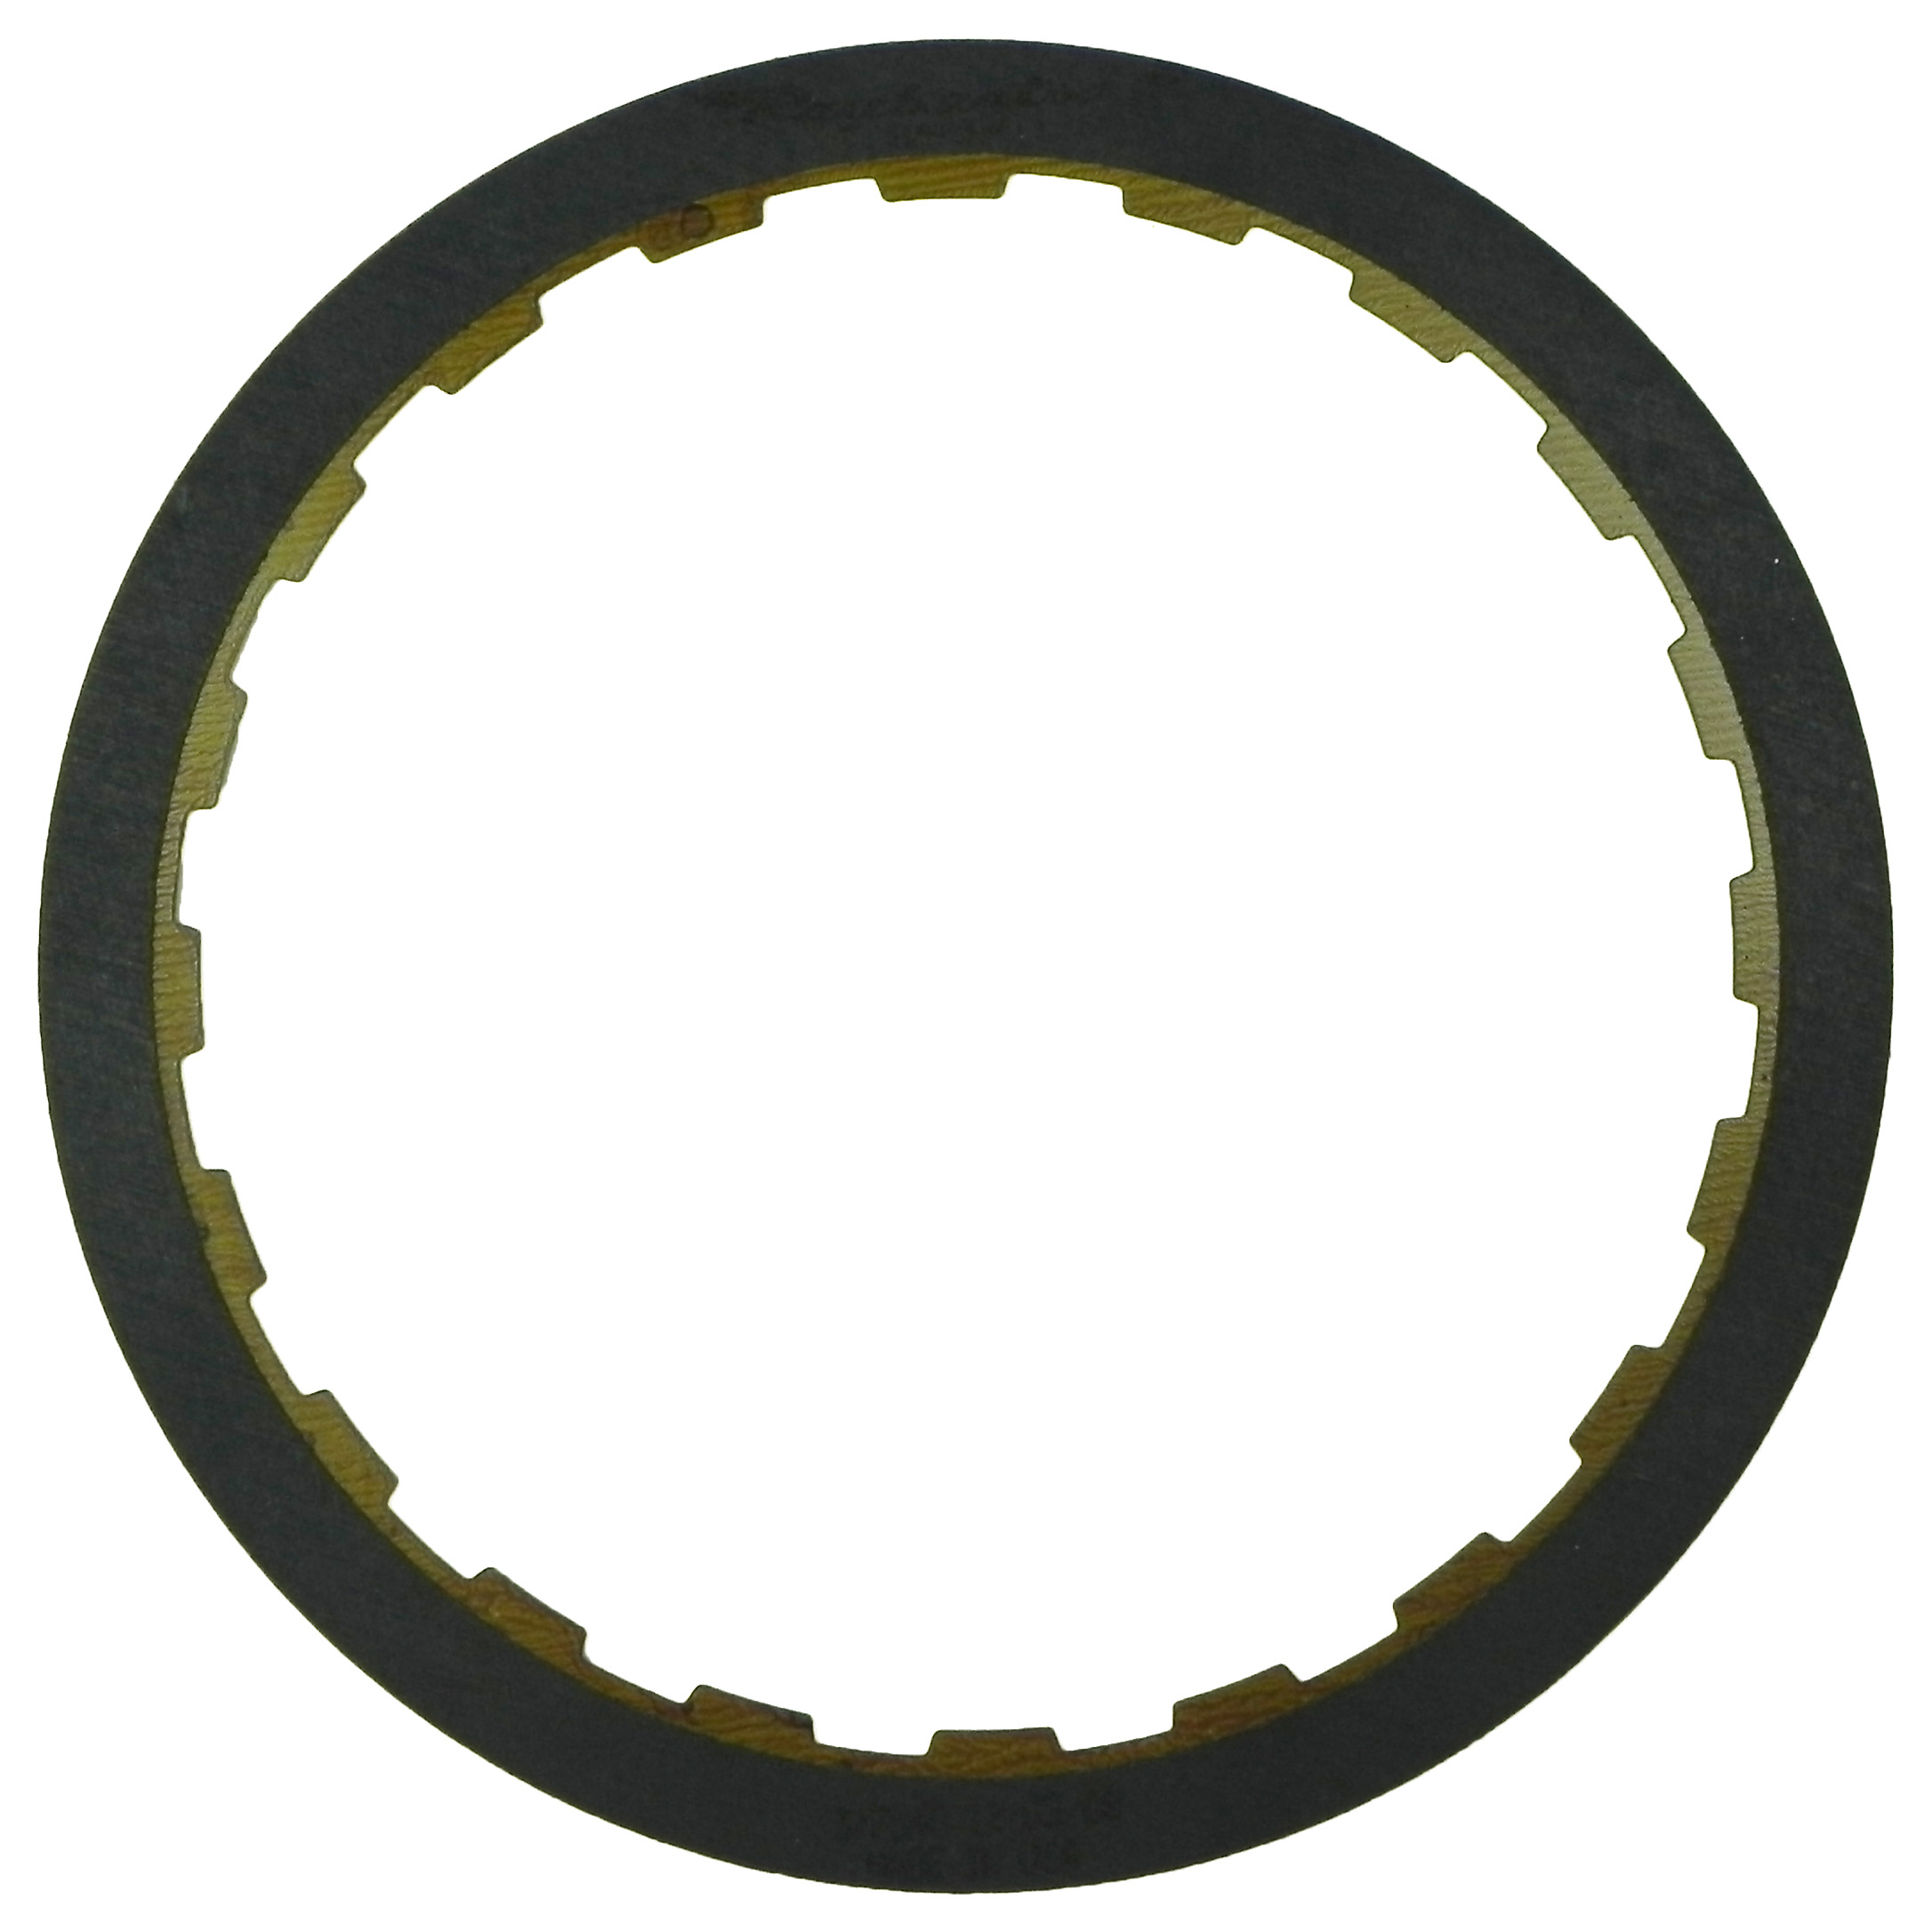 TH700-R4, 4L60, 4L60E, 4L65E, 4L70E GEN 2, Blue Plate Special Friction Clutch Plate